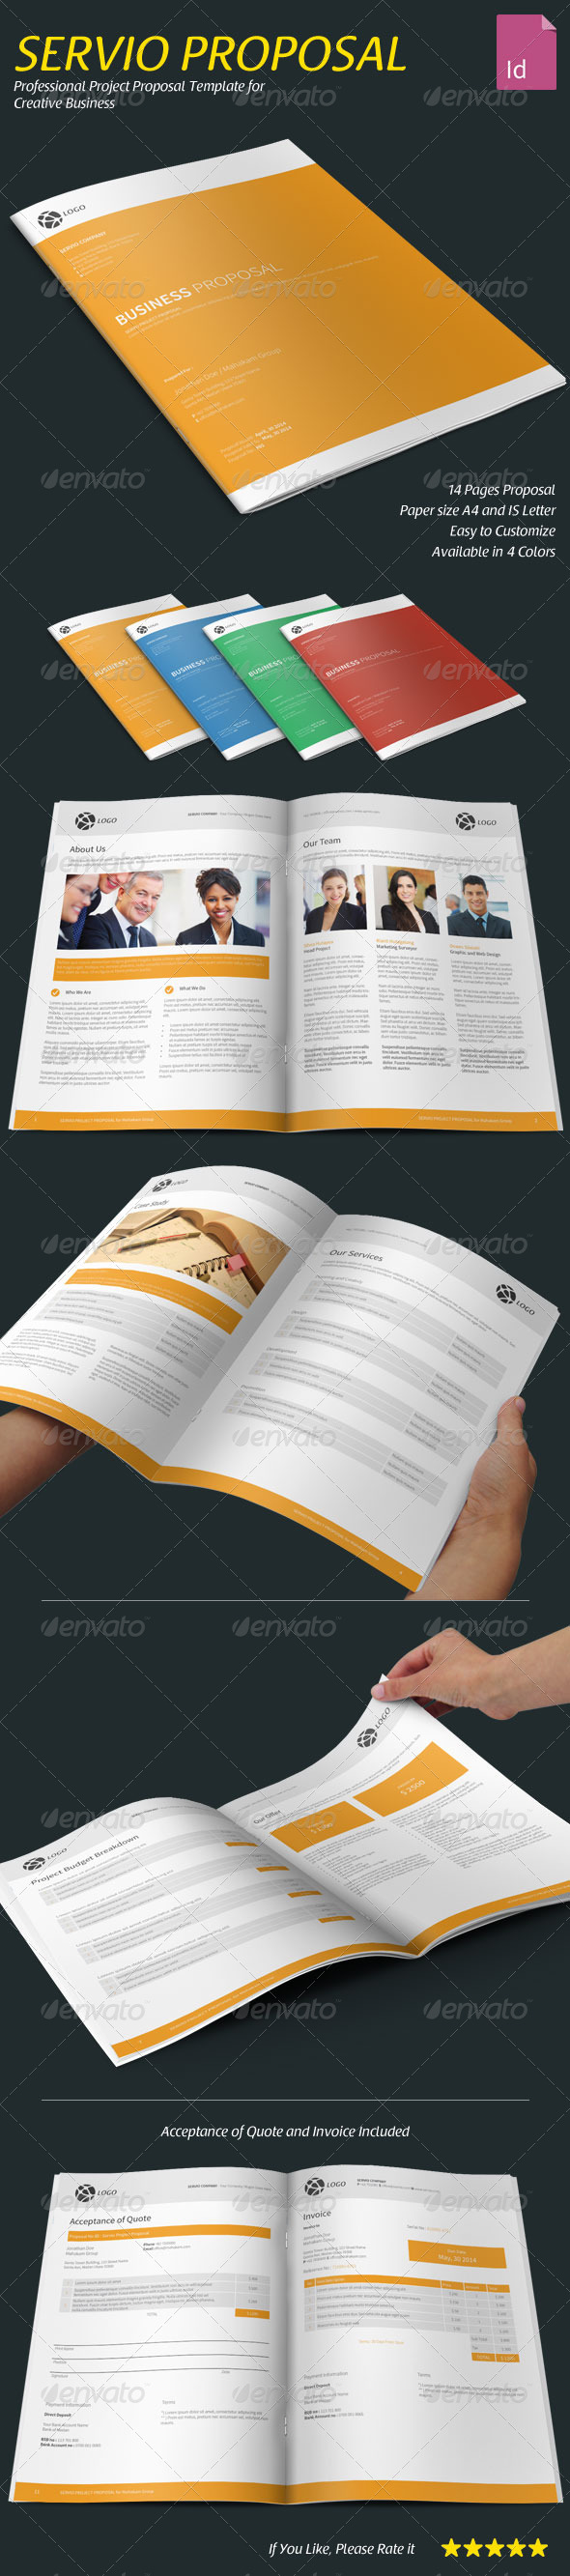 GraphicRiver Servio Proposal 7397019